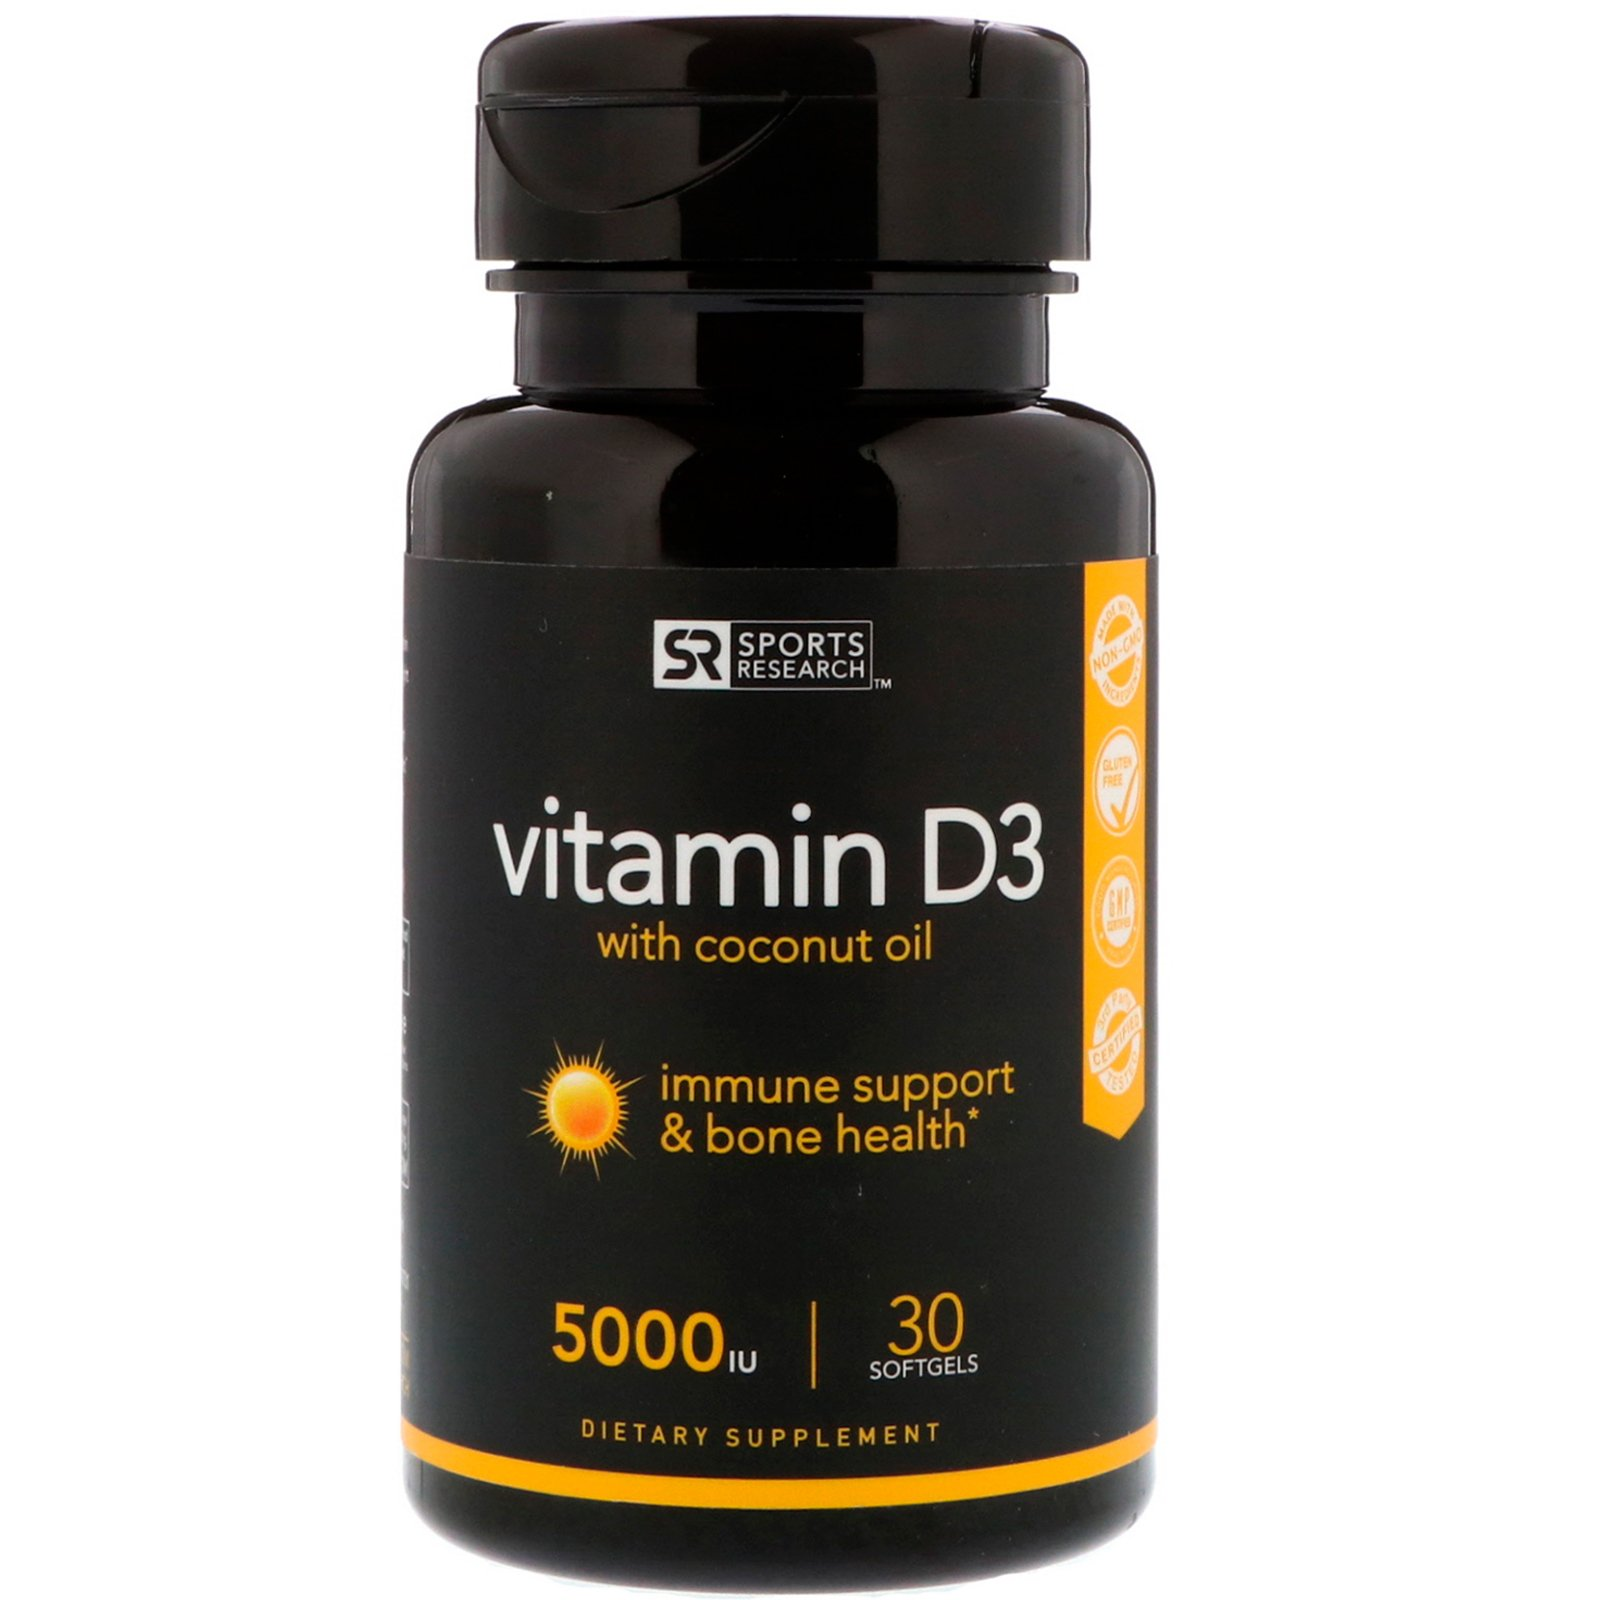 Vitamin D3 with Coconut Oil